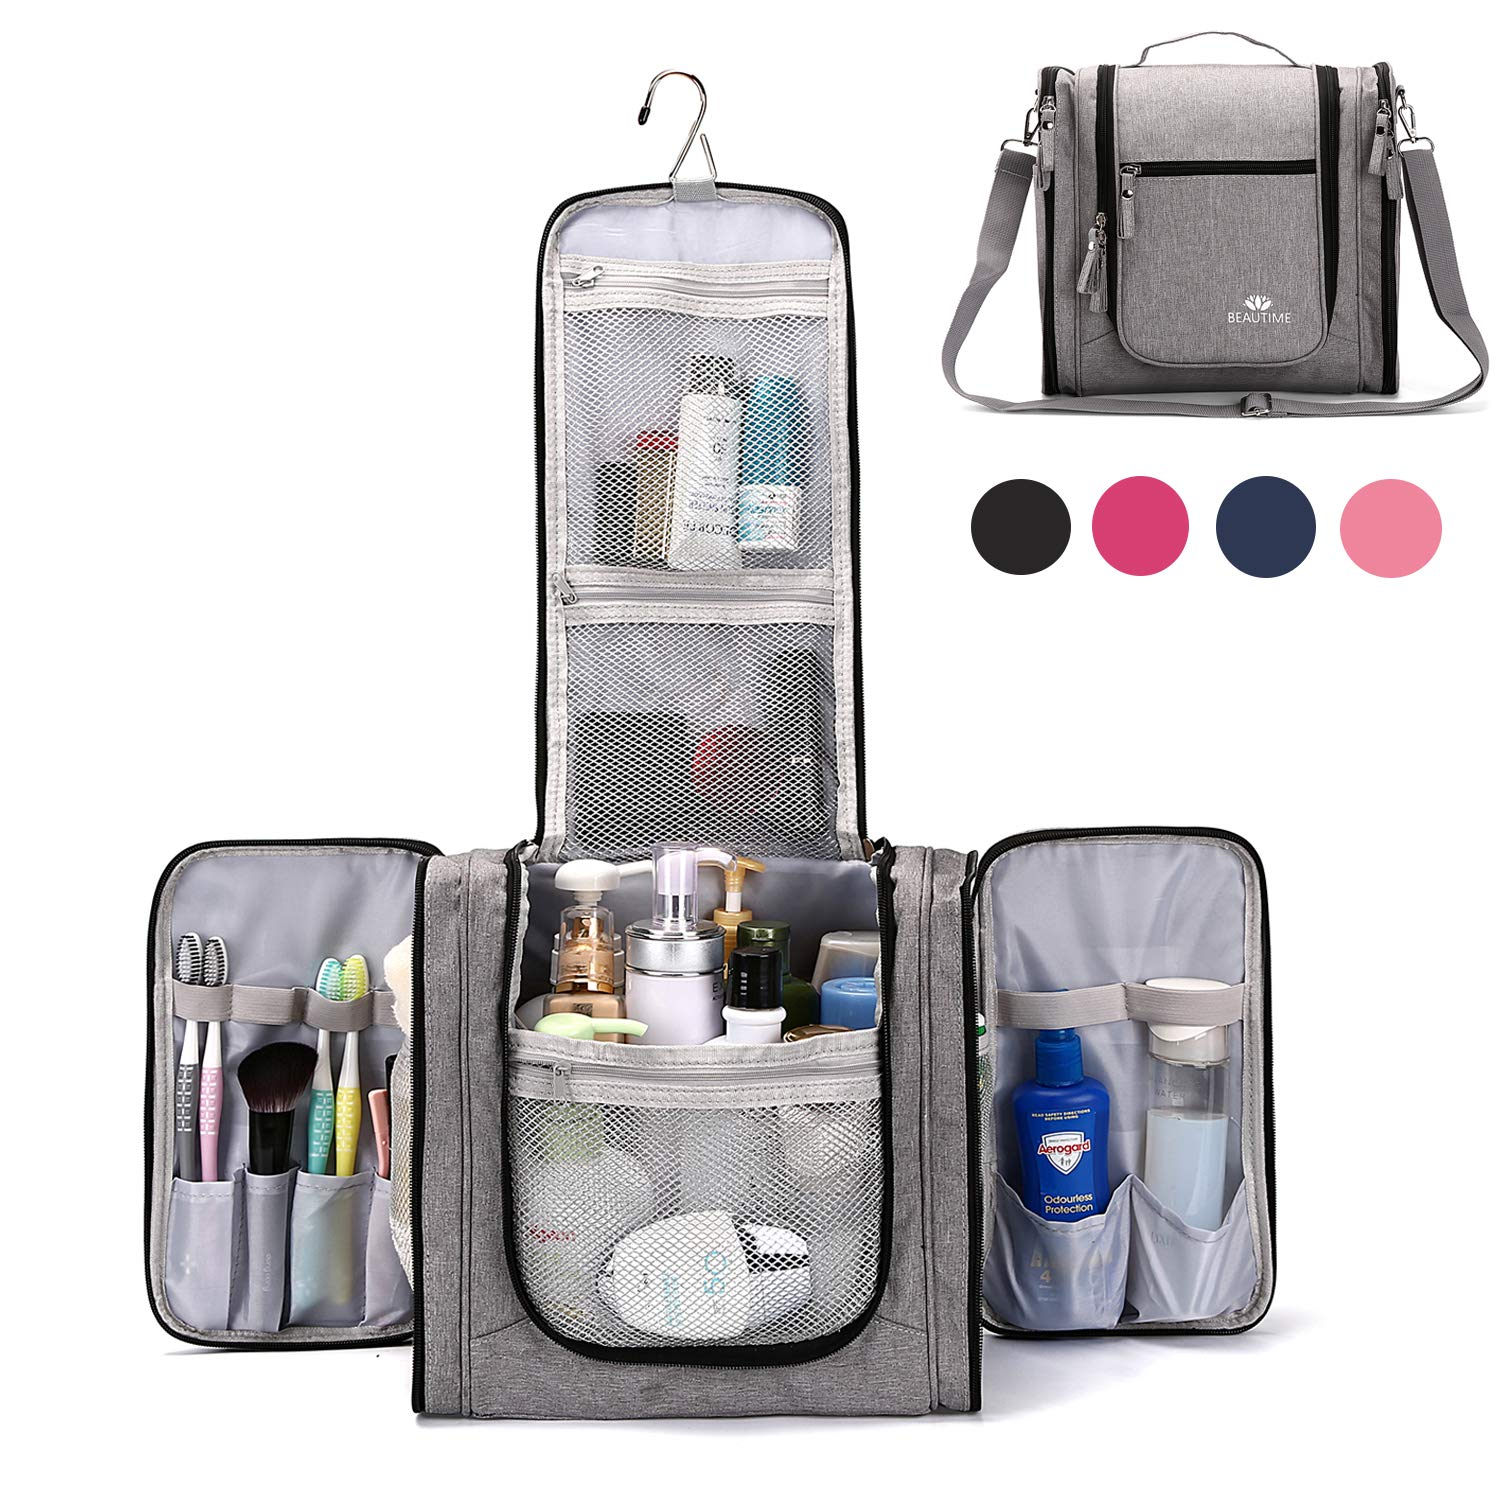 Large Hanging Travel Toiletry Bag for Men and Women Waterproof Makeup Organizer Bags wash bag Shaving Kit Cosmetic Bag for Accessories, Shampoo,Bathroom Shower, Personal Items Grey/Black by BEAUTIME